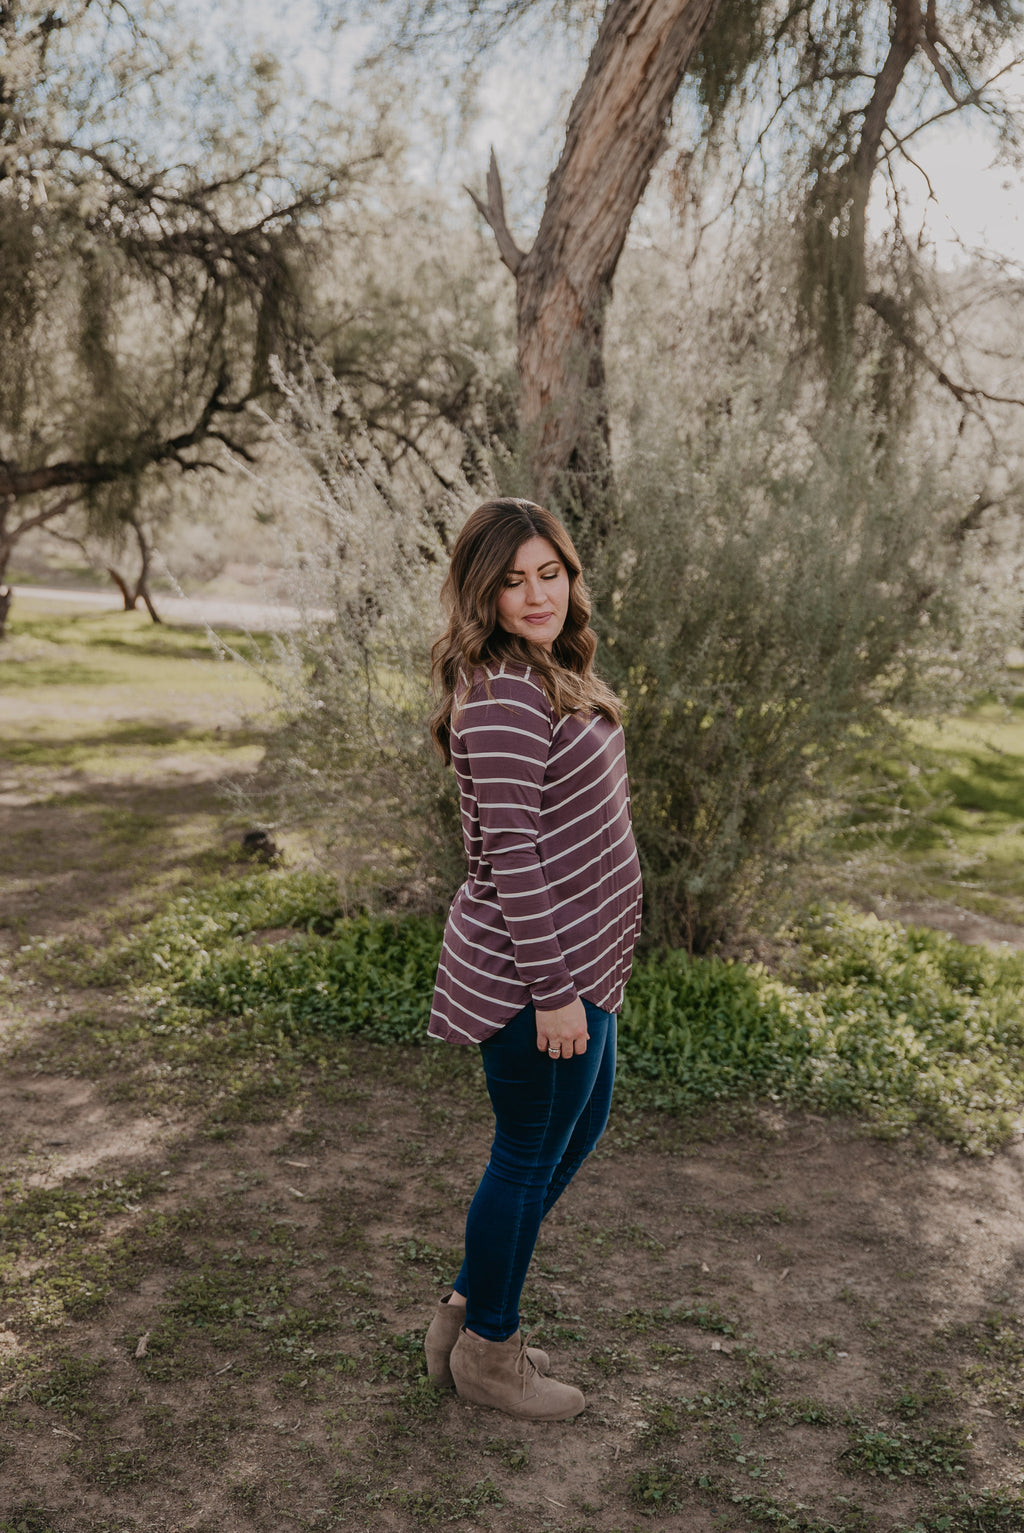 WI Basics: The Shay Striped Top in Eggplant (Sizes S-3X)